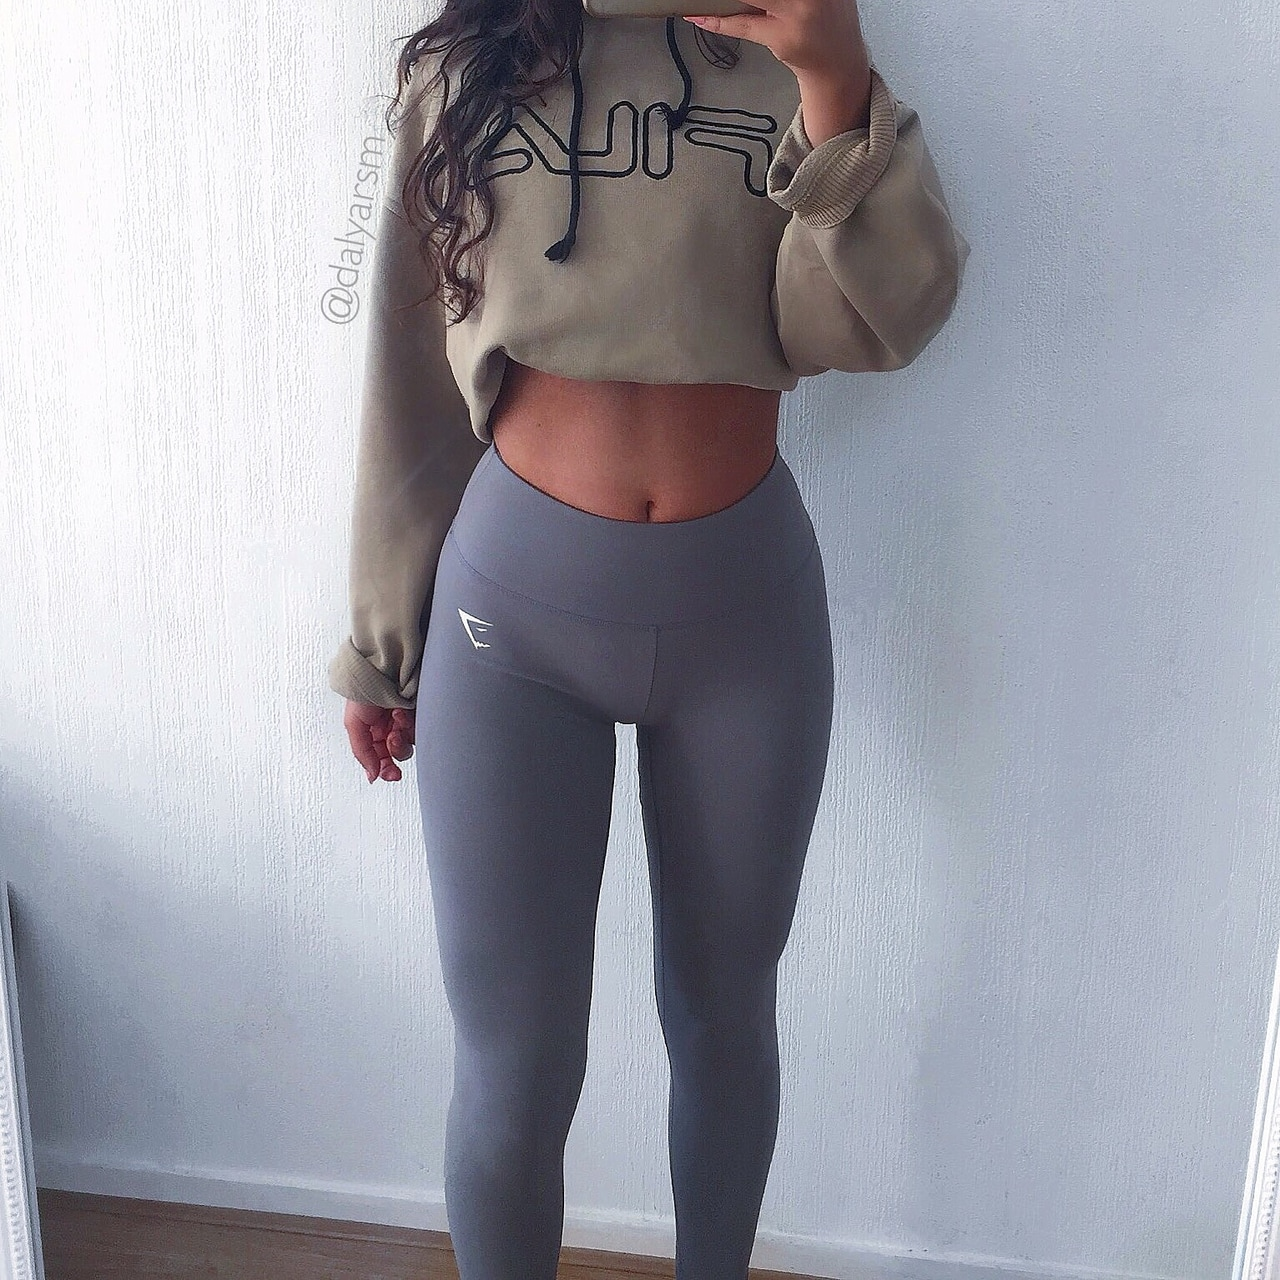 Fila, abs, fashion and fit